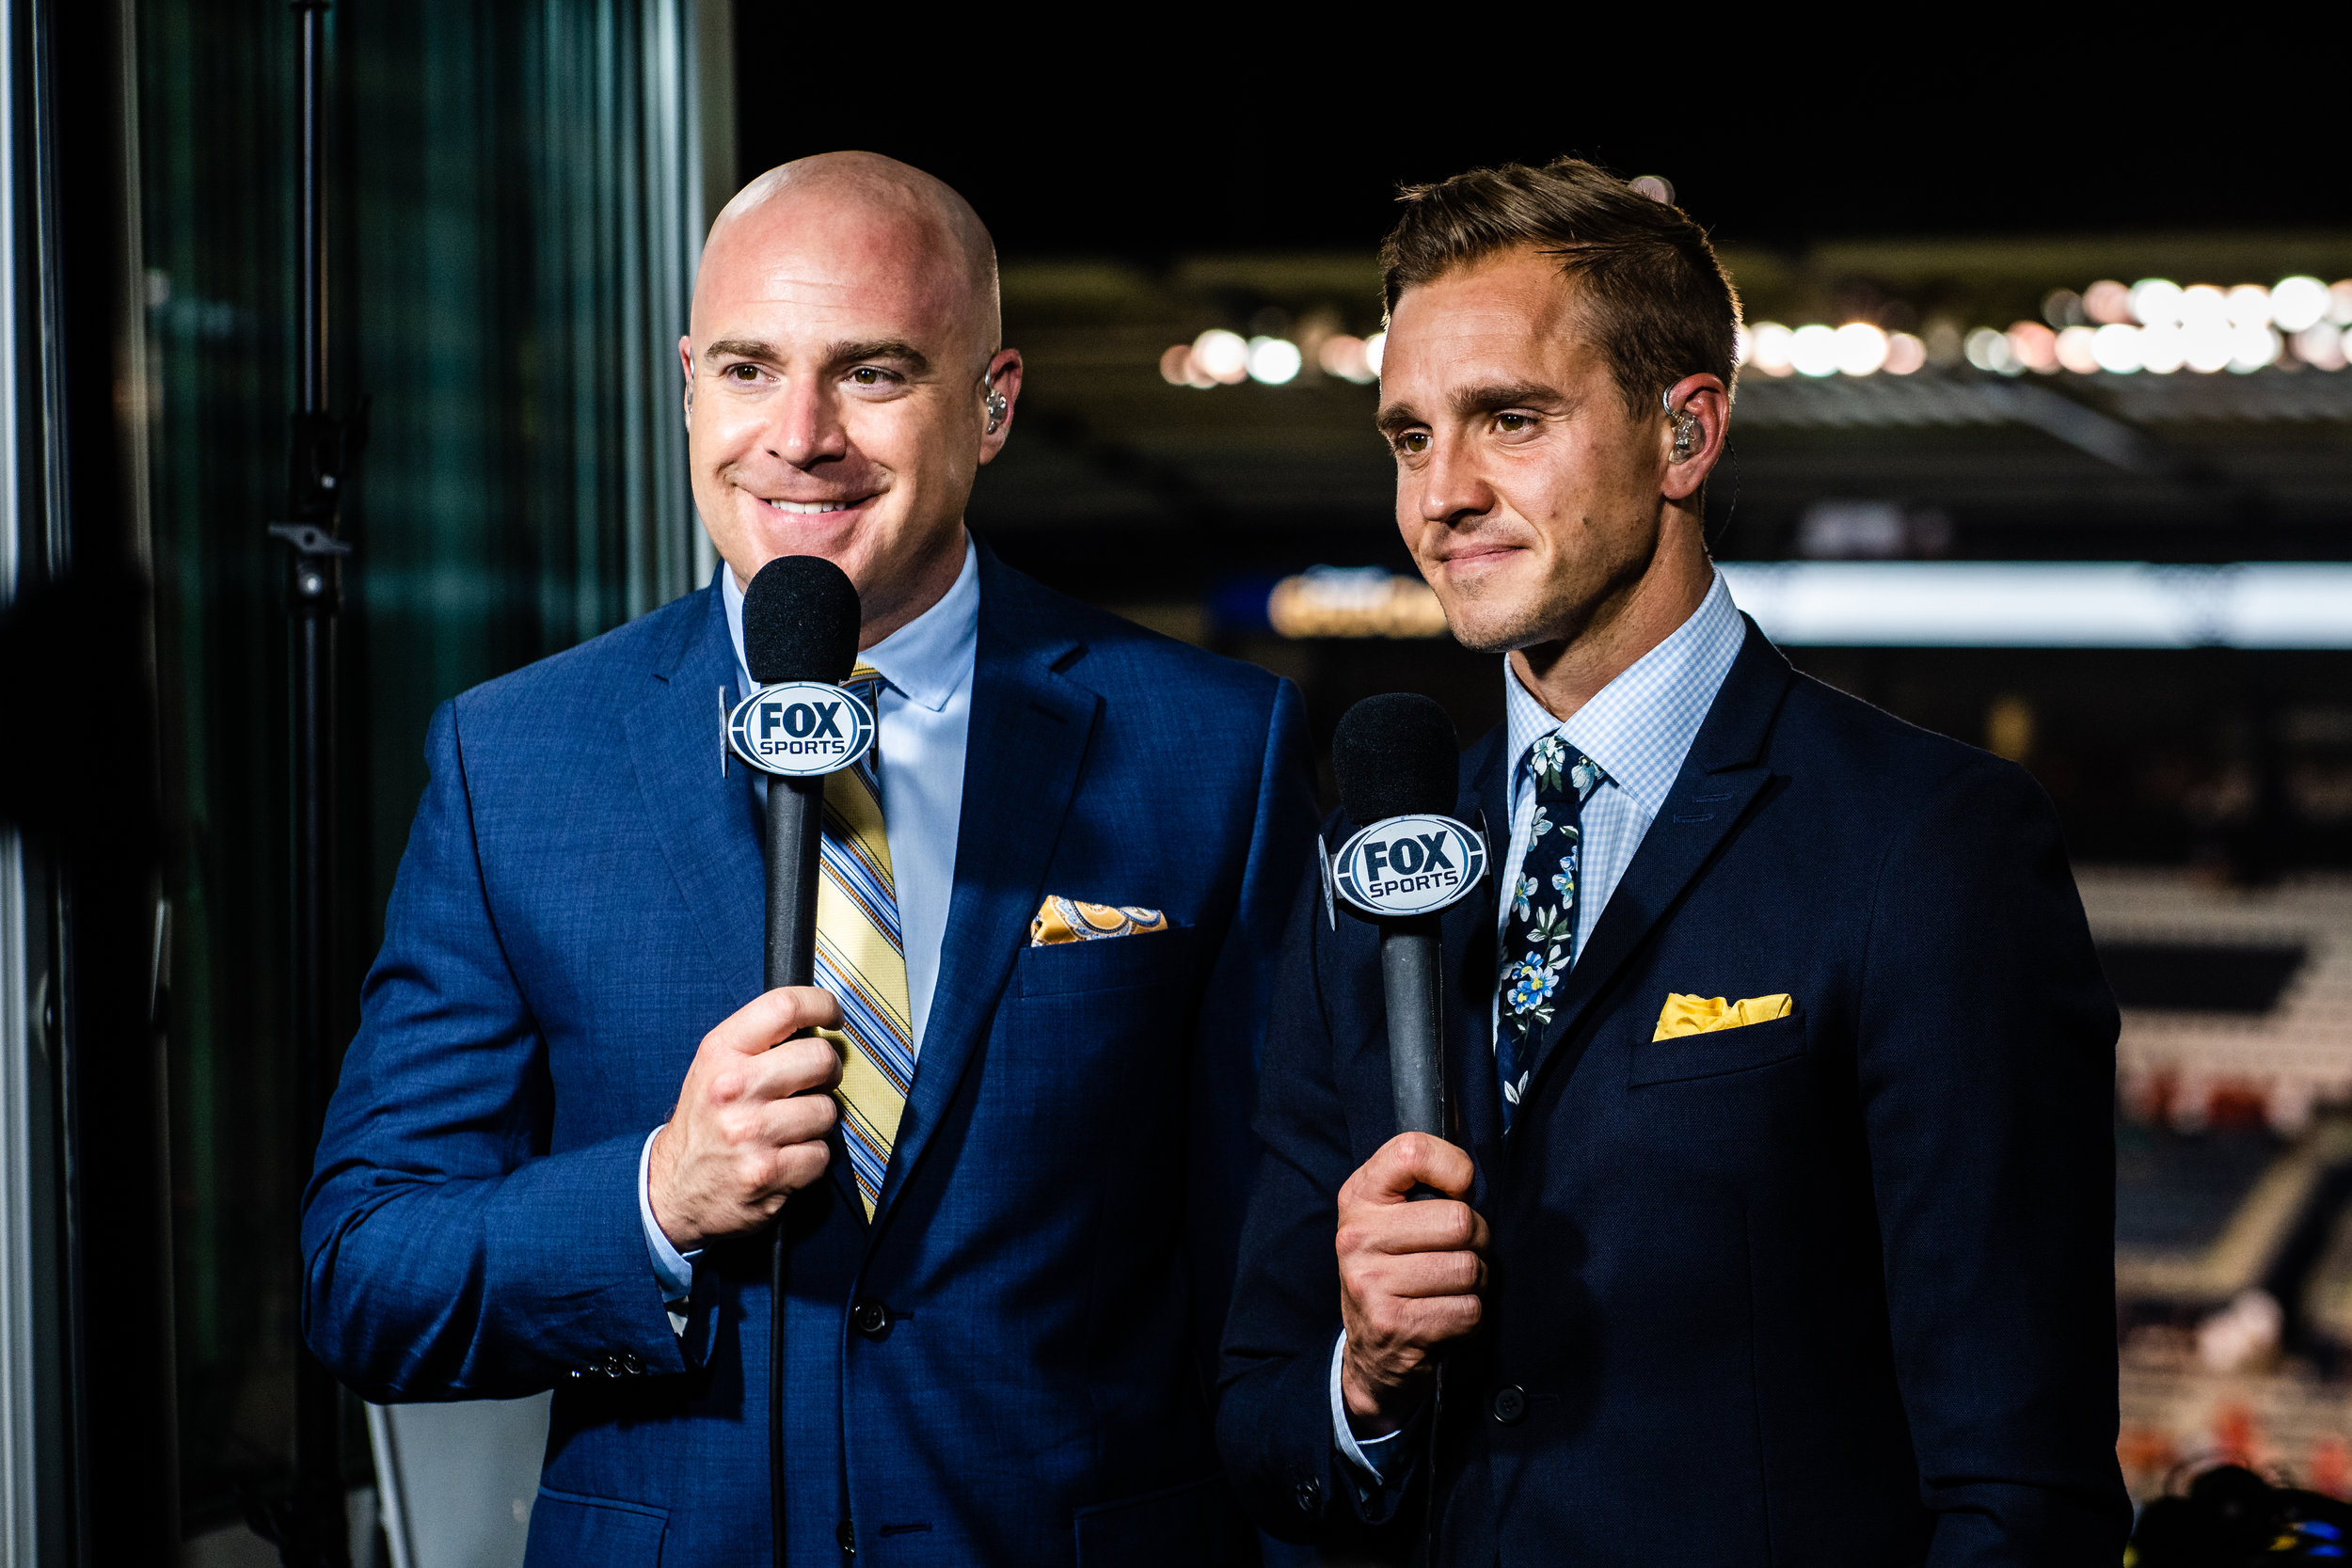 CONCACAF Gold Cup - June 26, 2019 - CJC06018.jpg